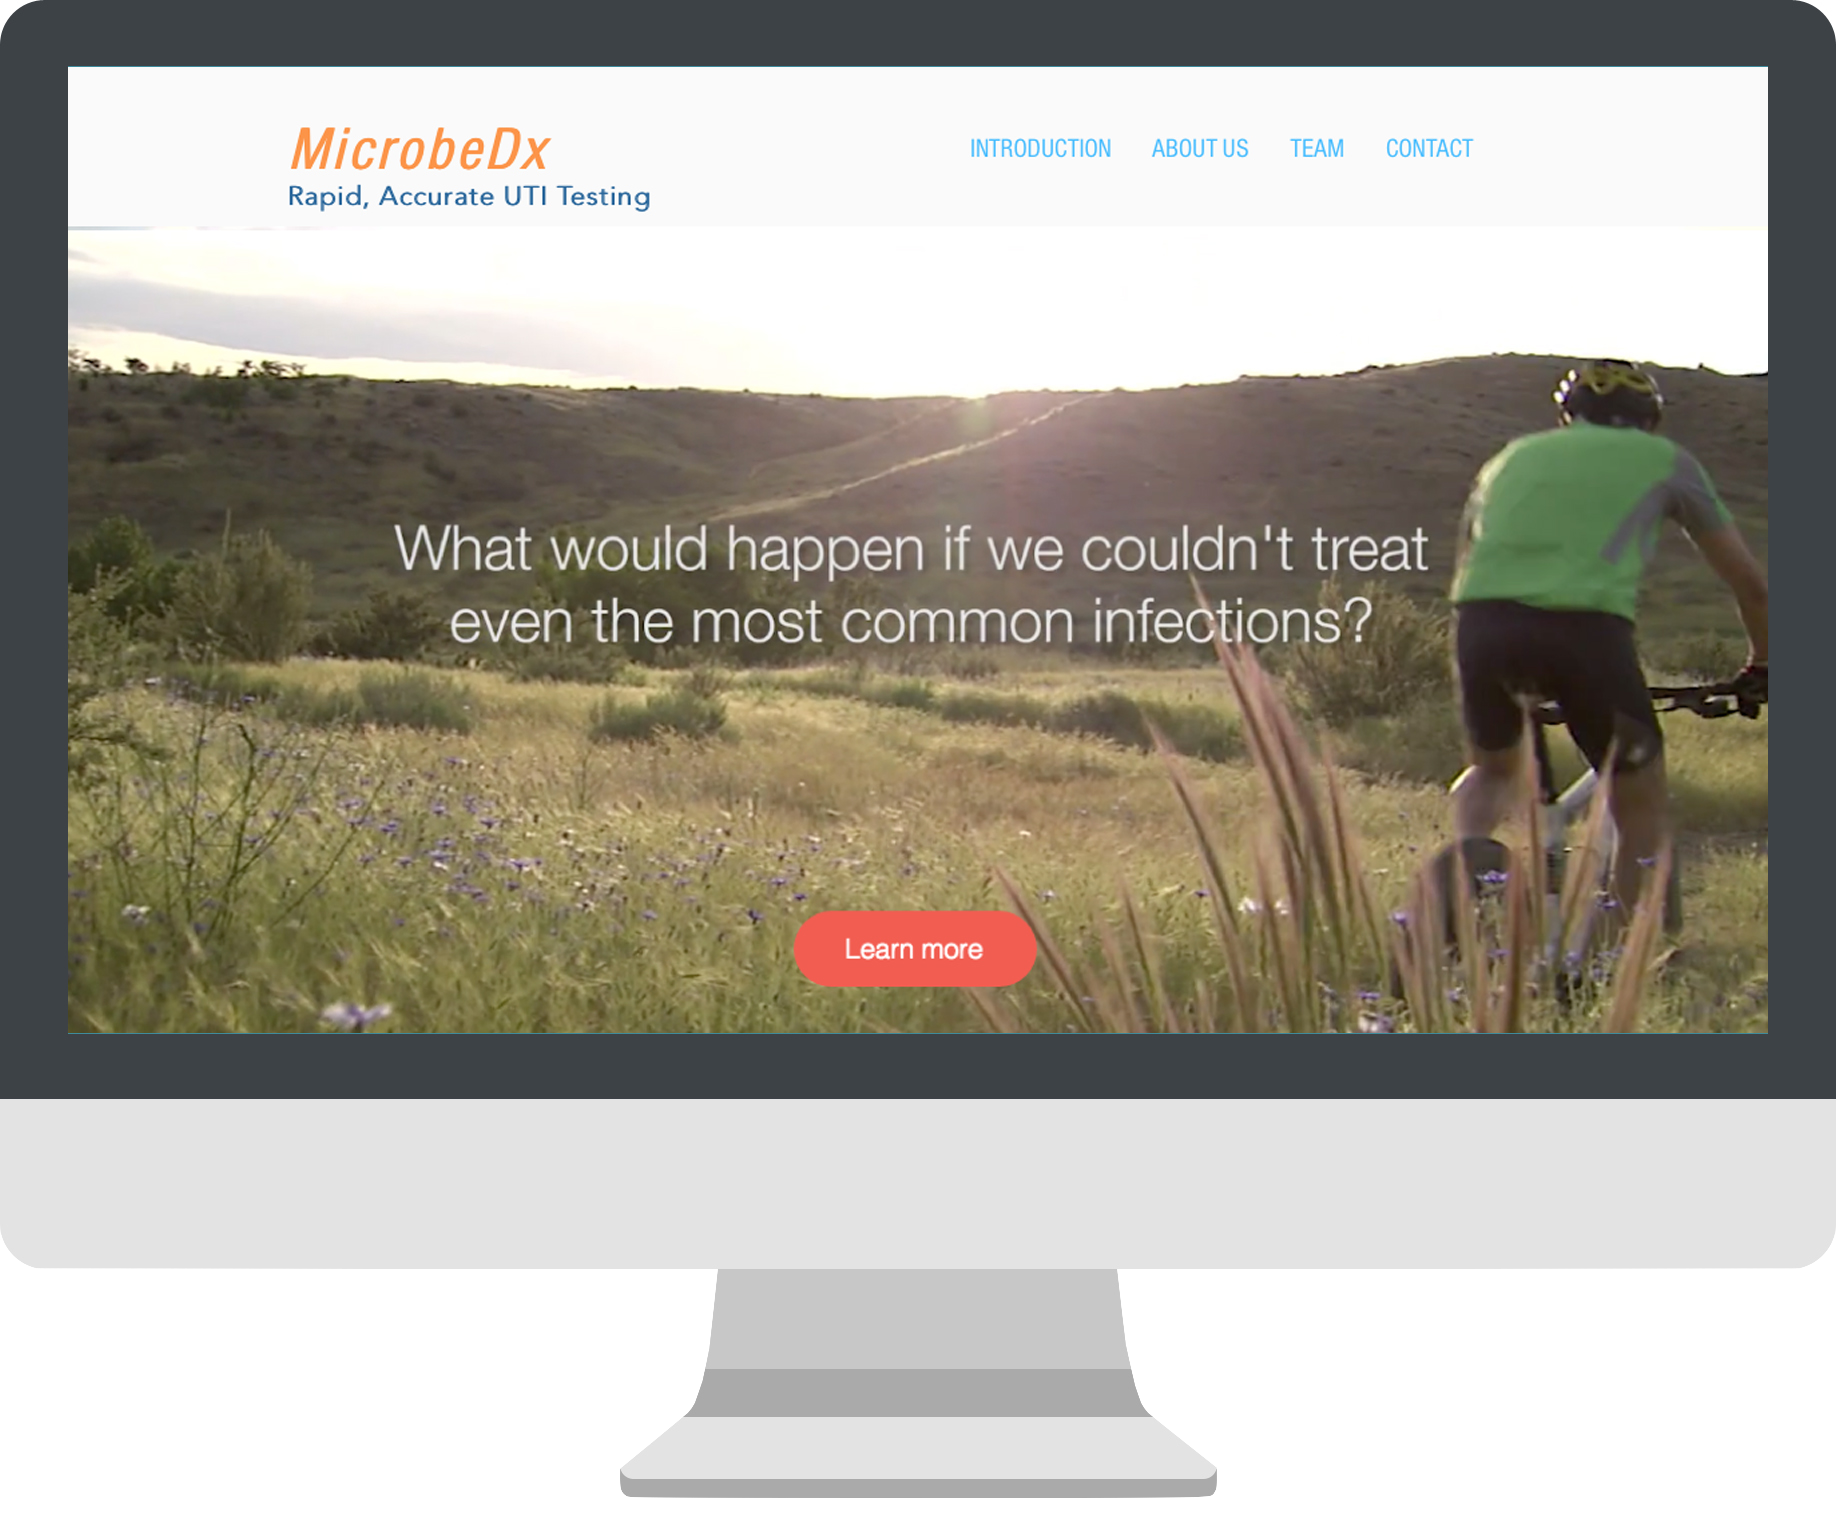 MicrobeDx_landing_Page.png